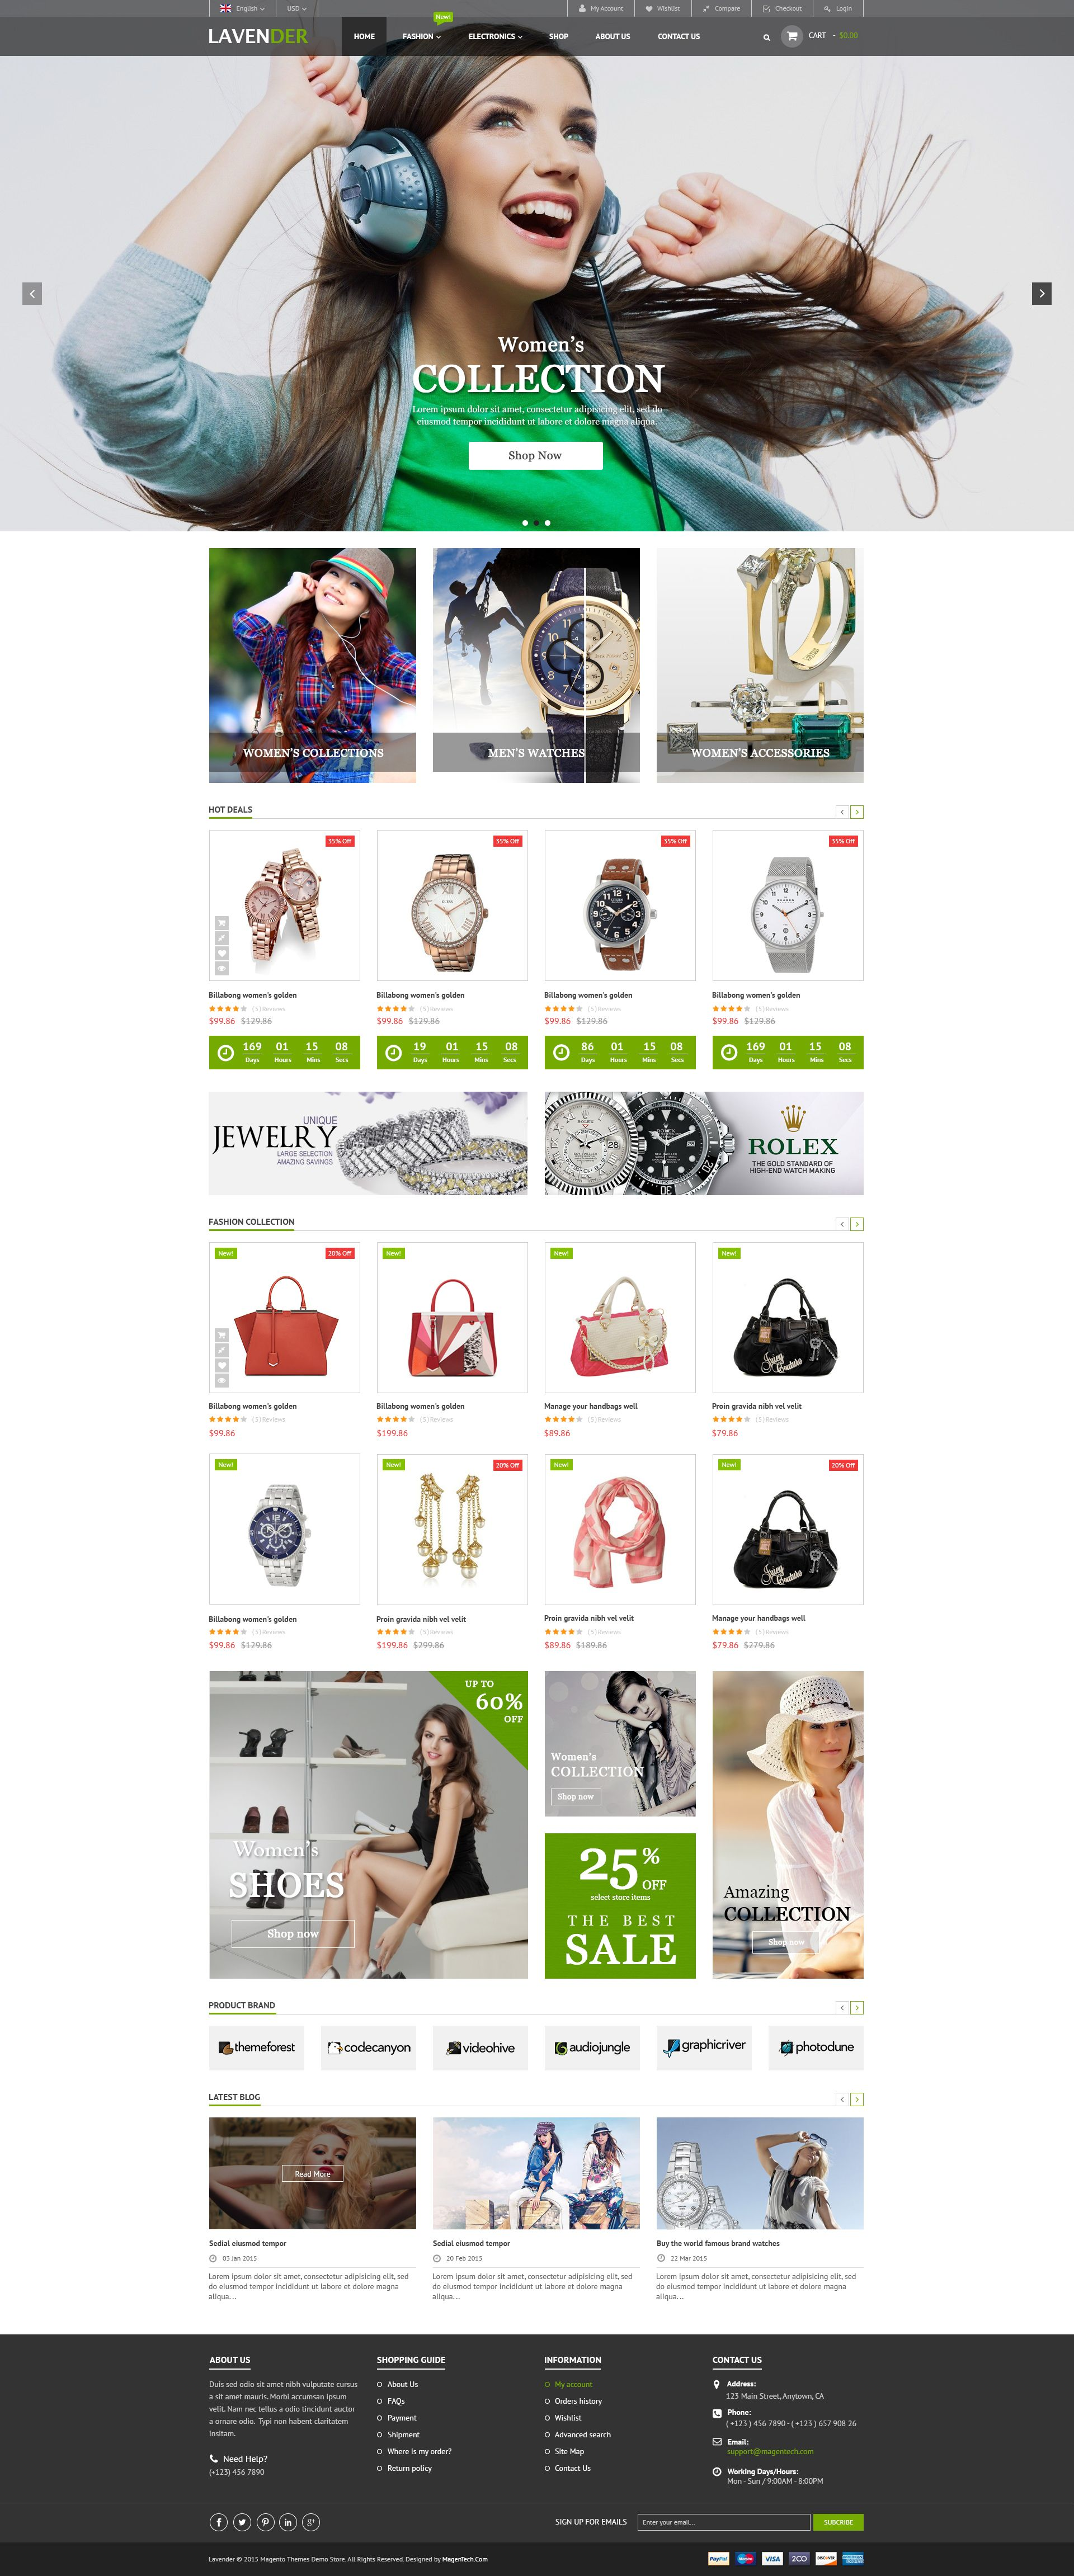 SM Lavender - Multipurpose Magento Theme Screenshot 3